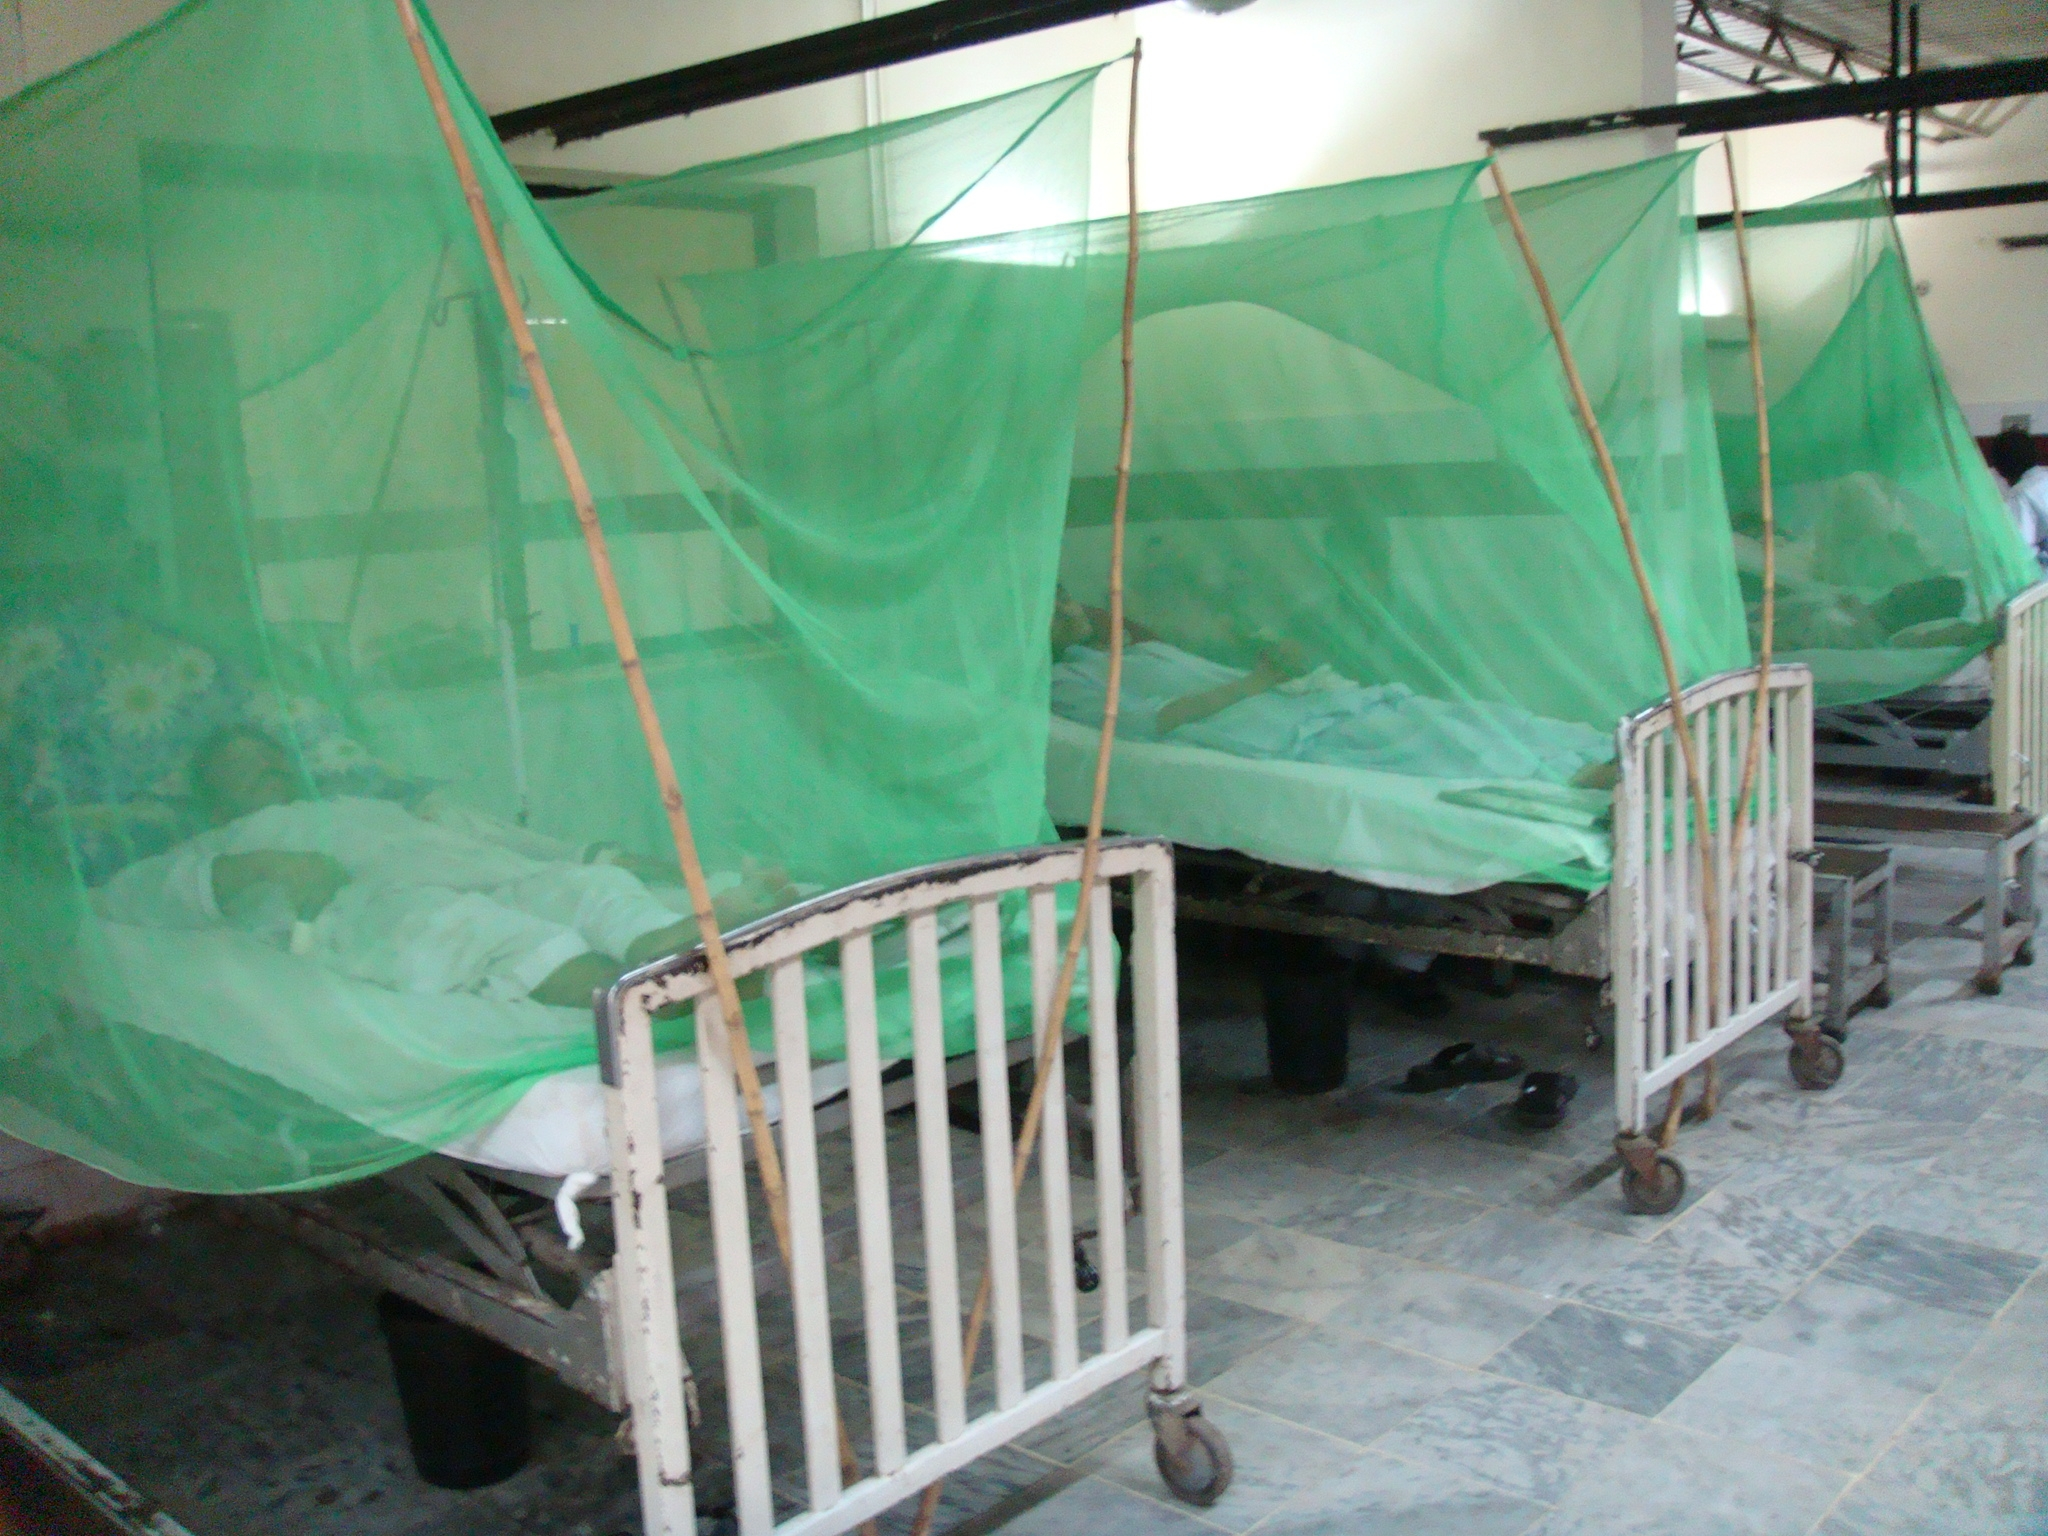 Medicated mosquito nets are important in fighting the dengue fever threat.